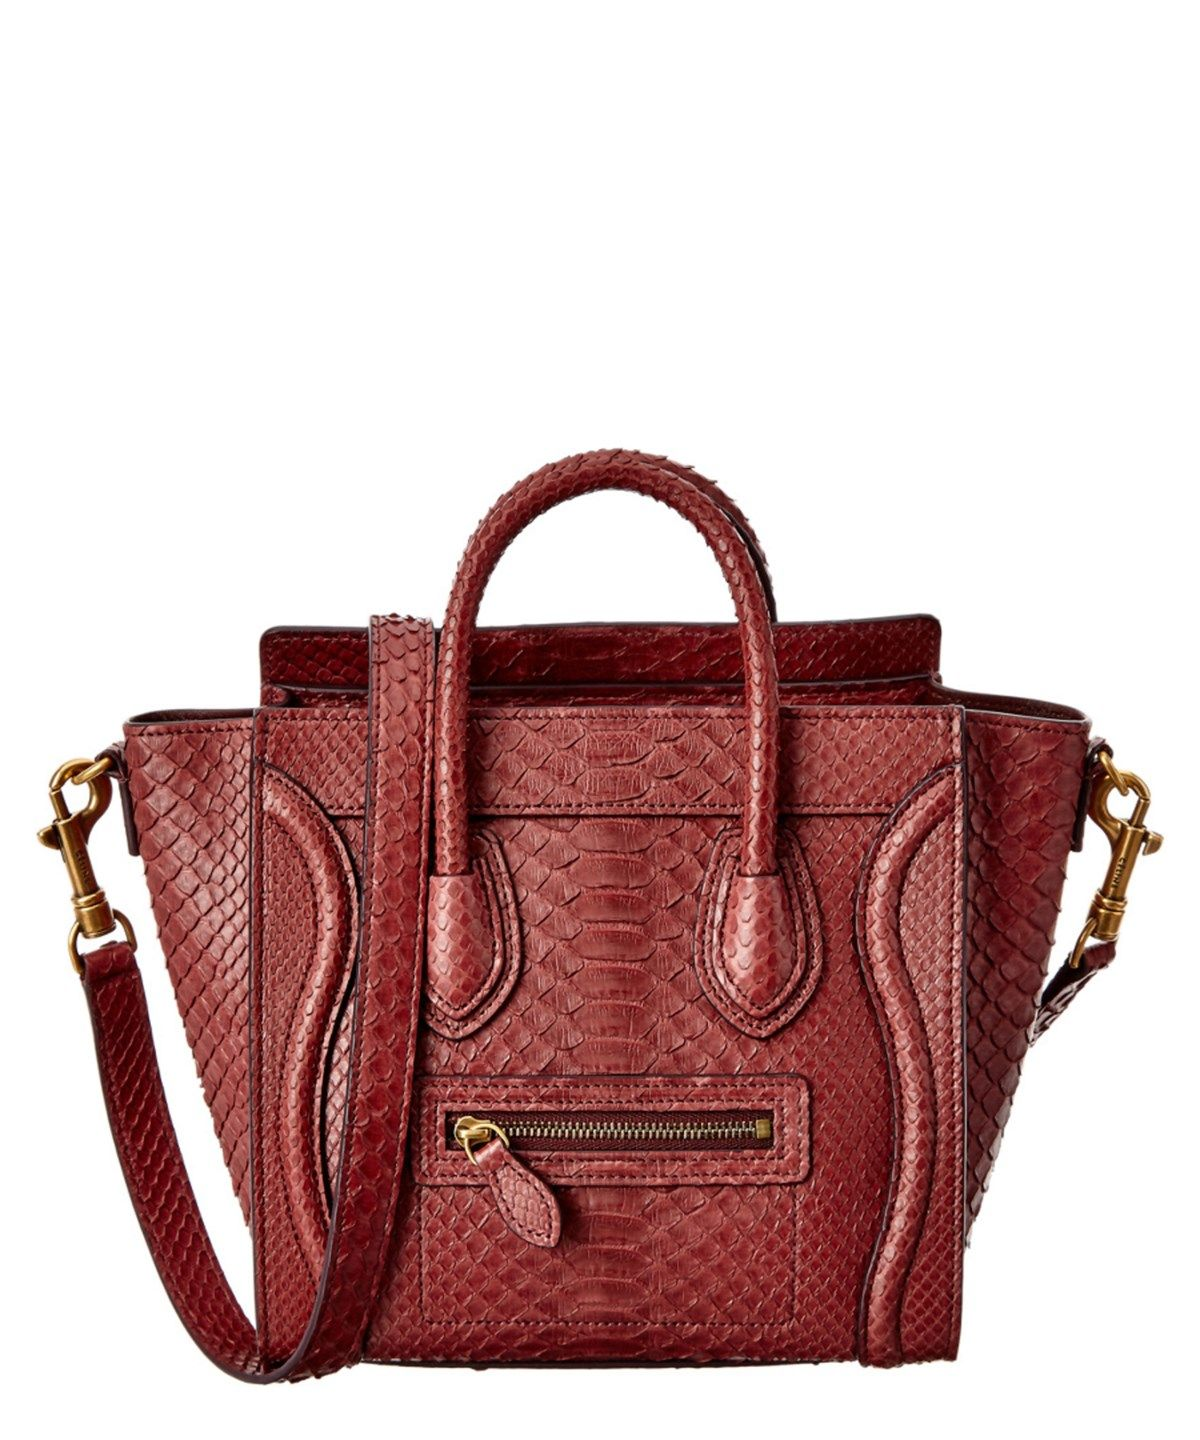 5e331c91f529 CELINE CELINE NANO PYTHON LUGGAGE TOTE .  celine  bags  shoulder bags  hand  bags  tote  lining